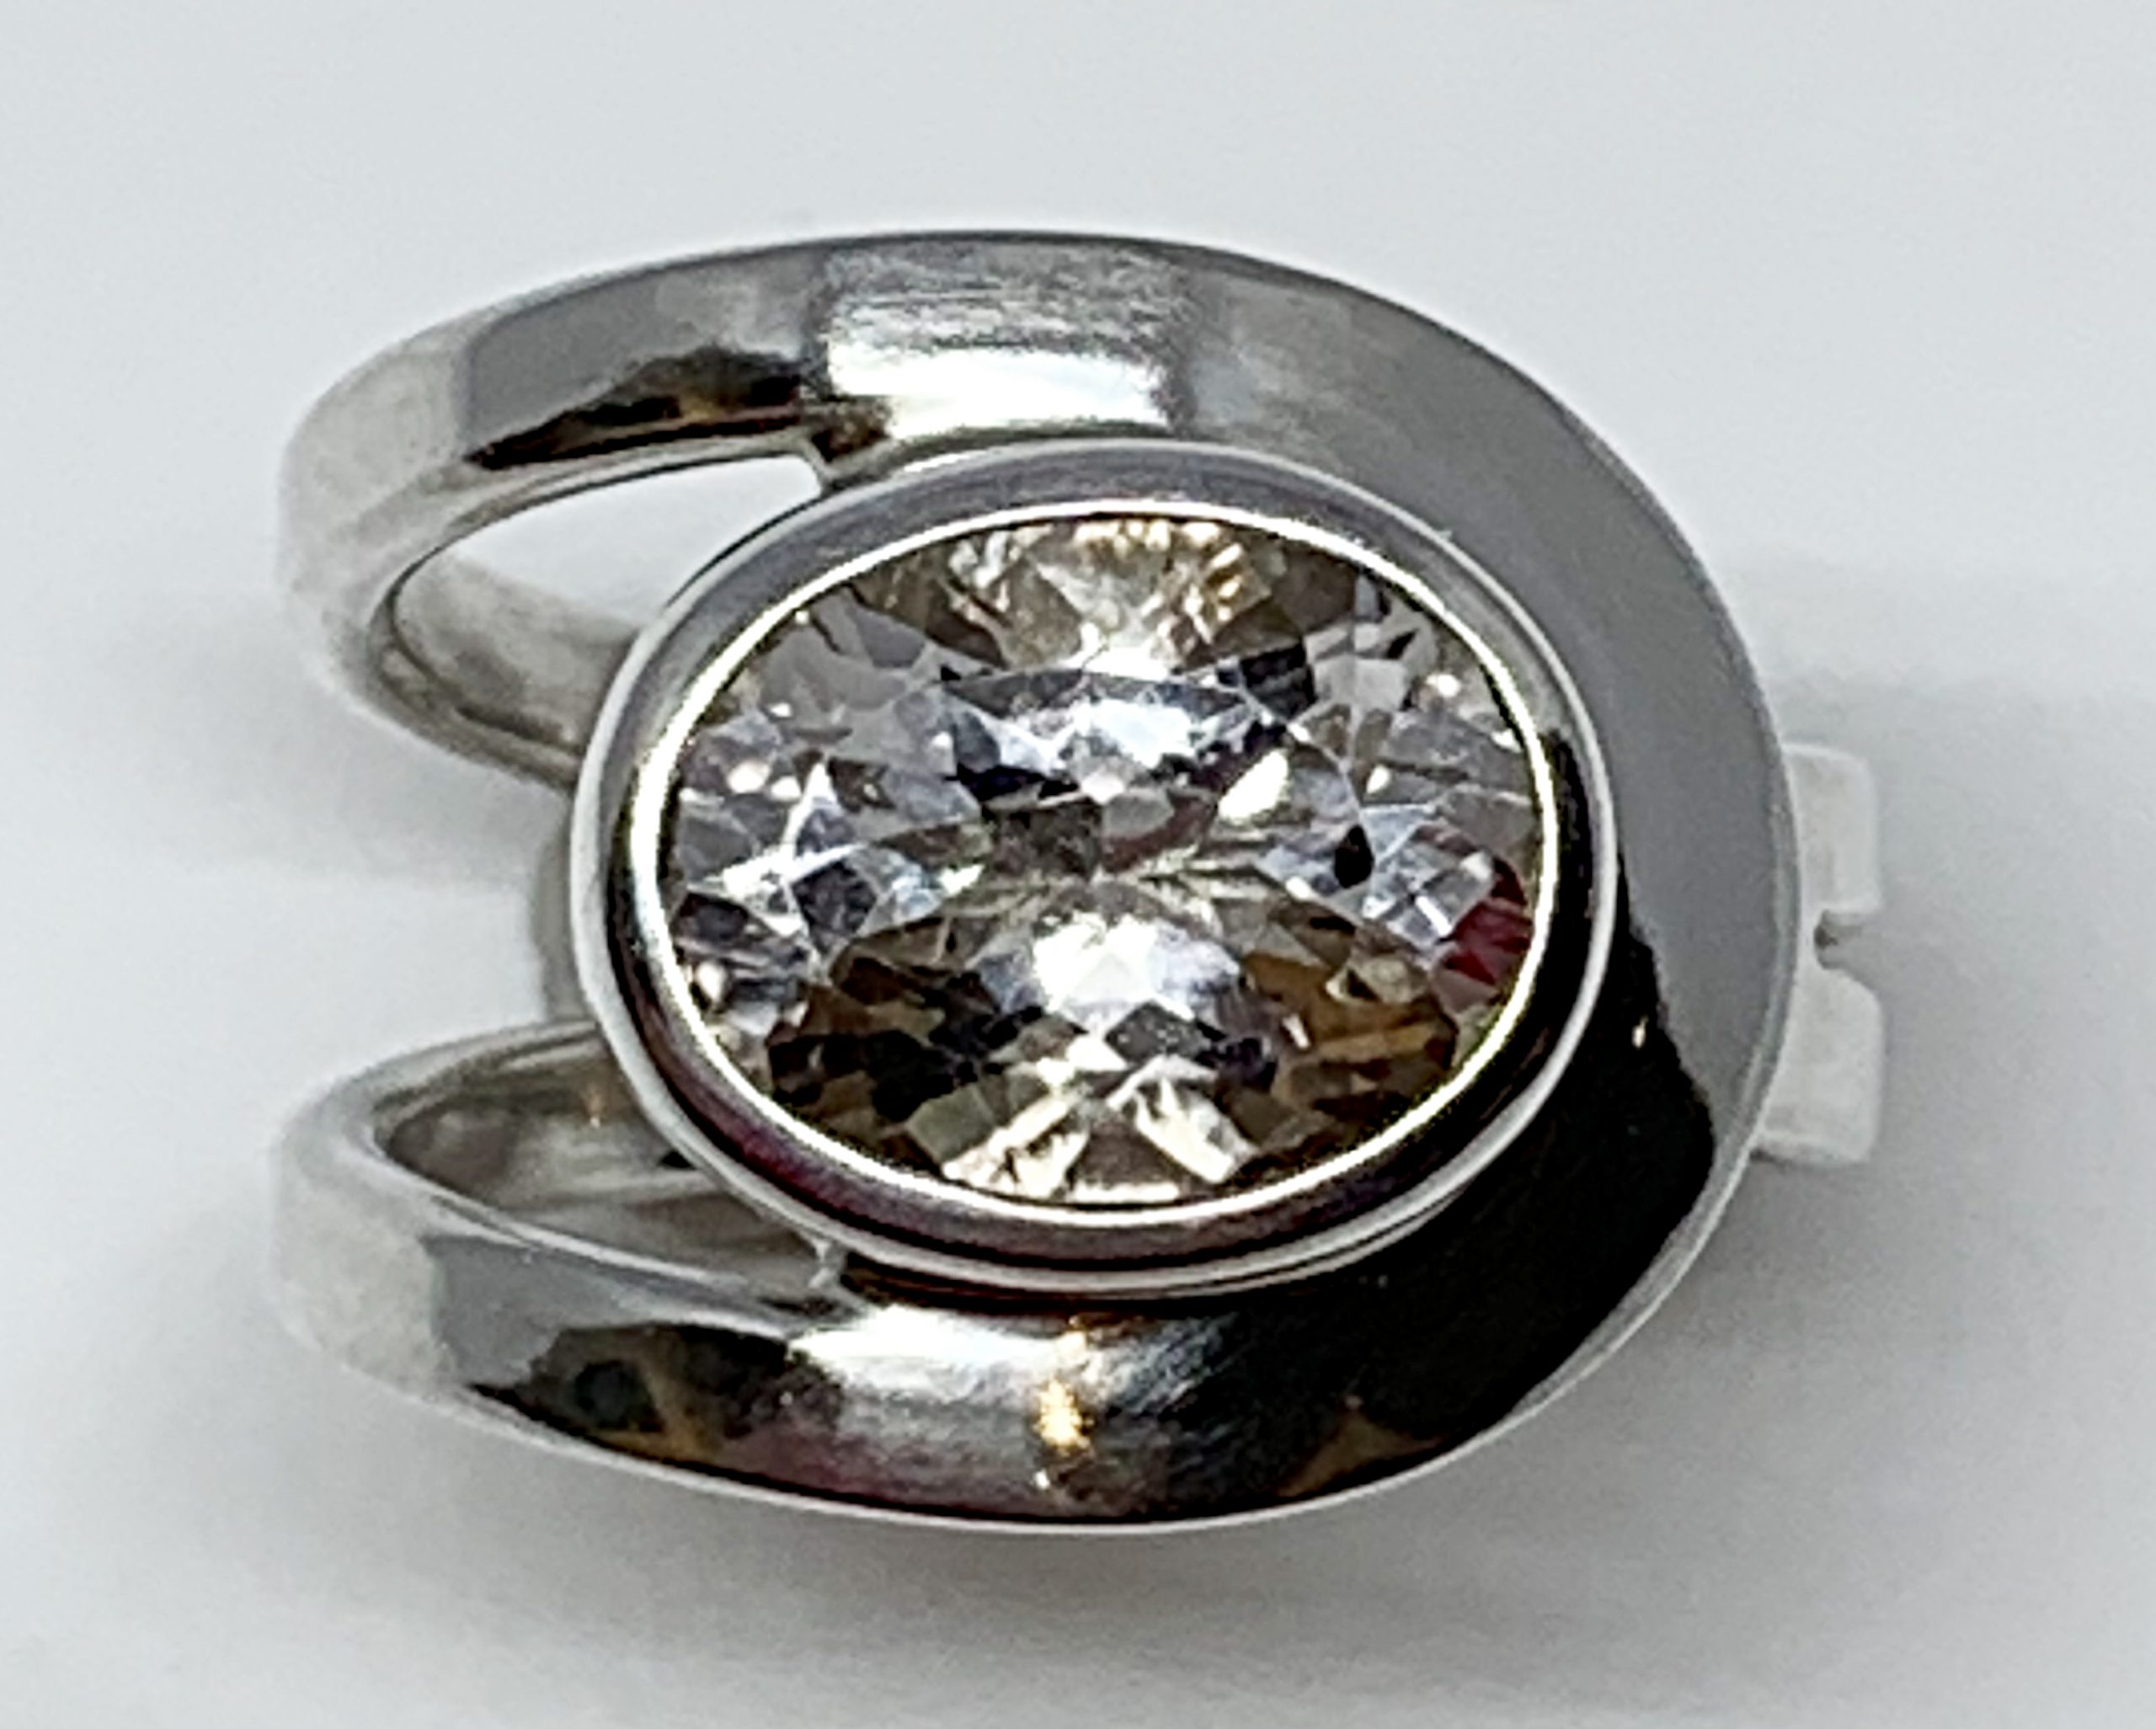 3.5ct white topaz + sterling silver ring by A&R Jewellery | Effusion Art Gallery + Cast Glass Studio, Invermere BC